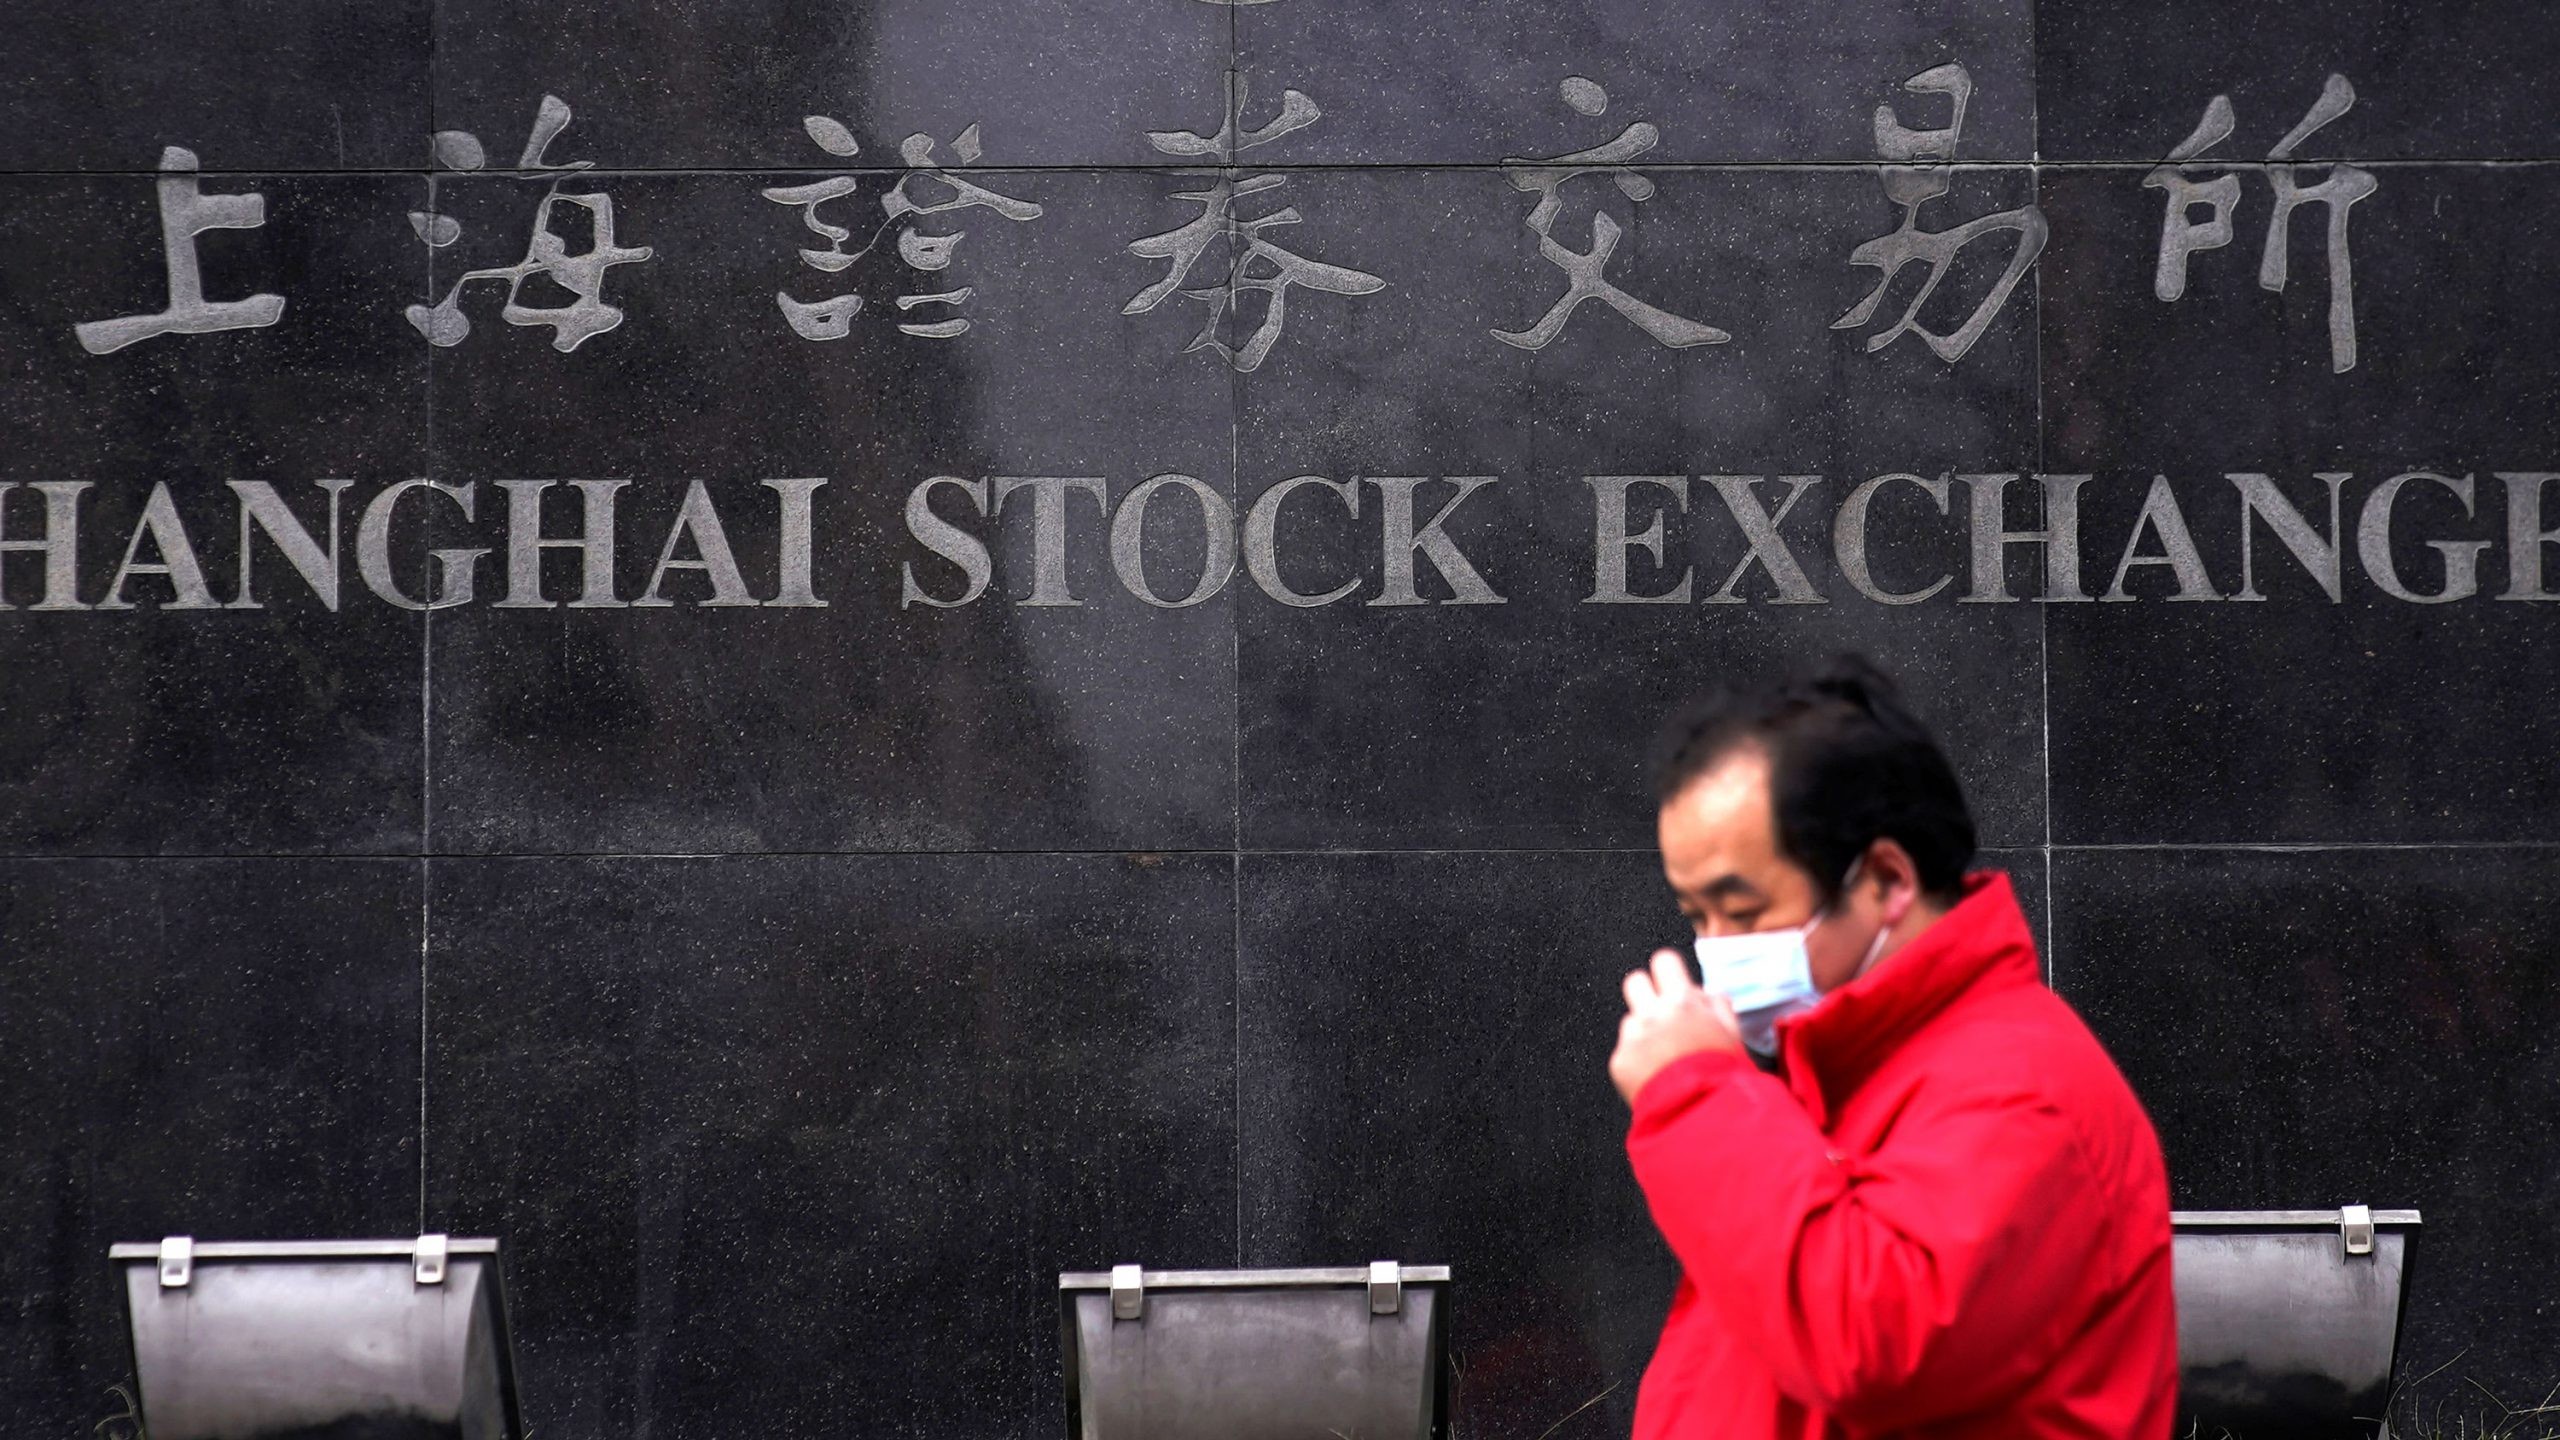 Stock market live updates: Dow futures up 130, Nike jumps, China stocks plunge on coronavirus